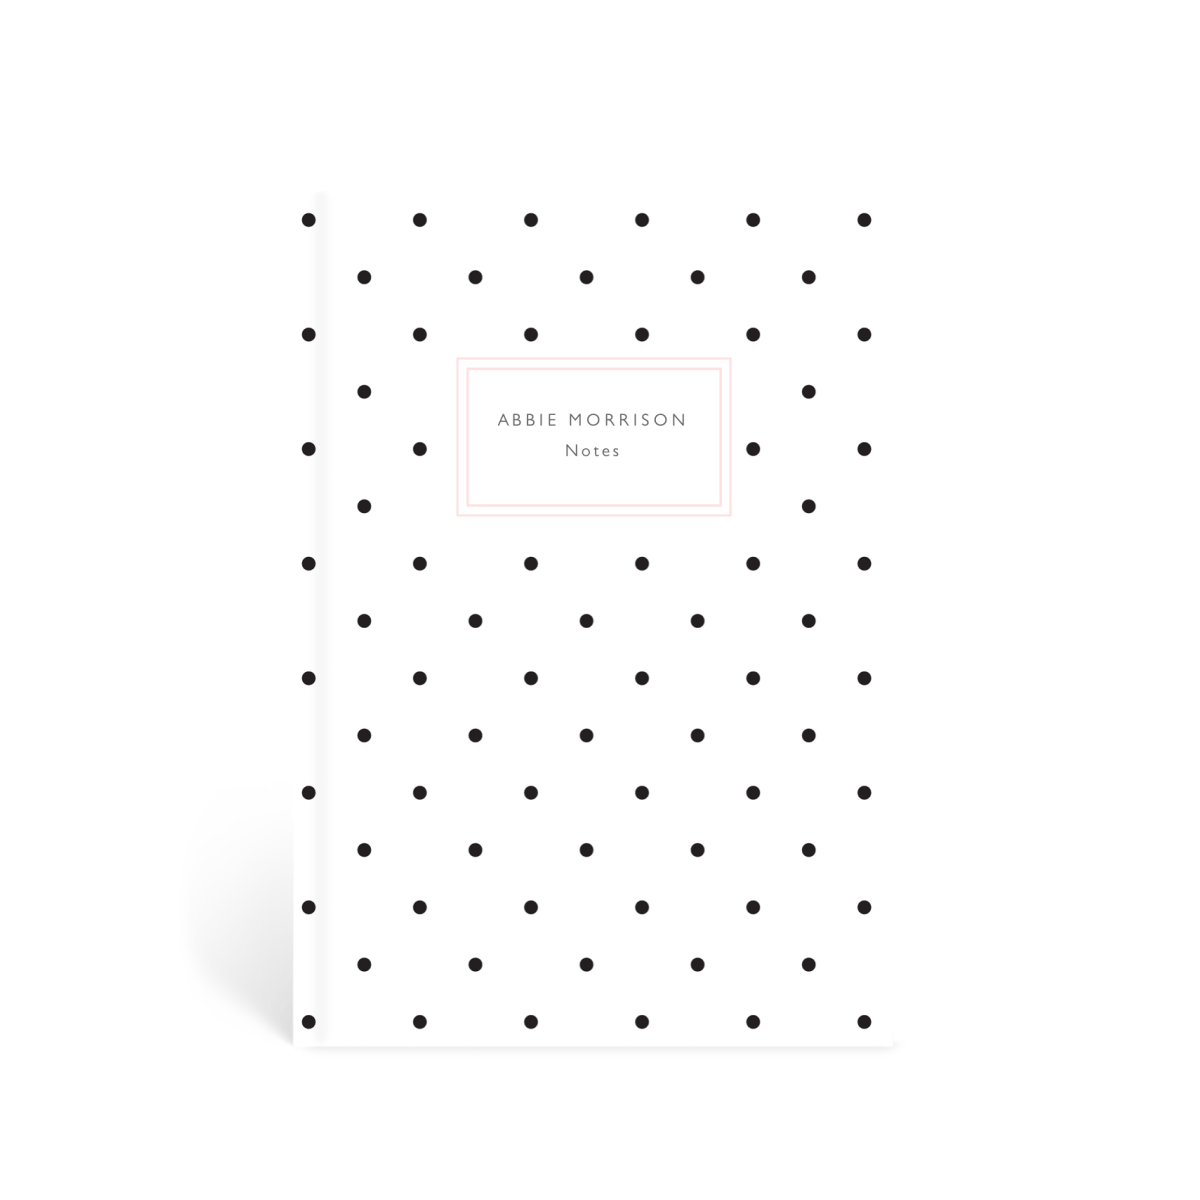 Https%3a%2f%2fwww.papier.com%2fproduct image%2f56483%2f25%2fpolka dots 13567 front 1571081839.png?ixlib=rb 1.1